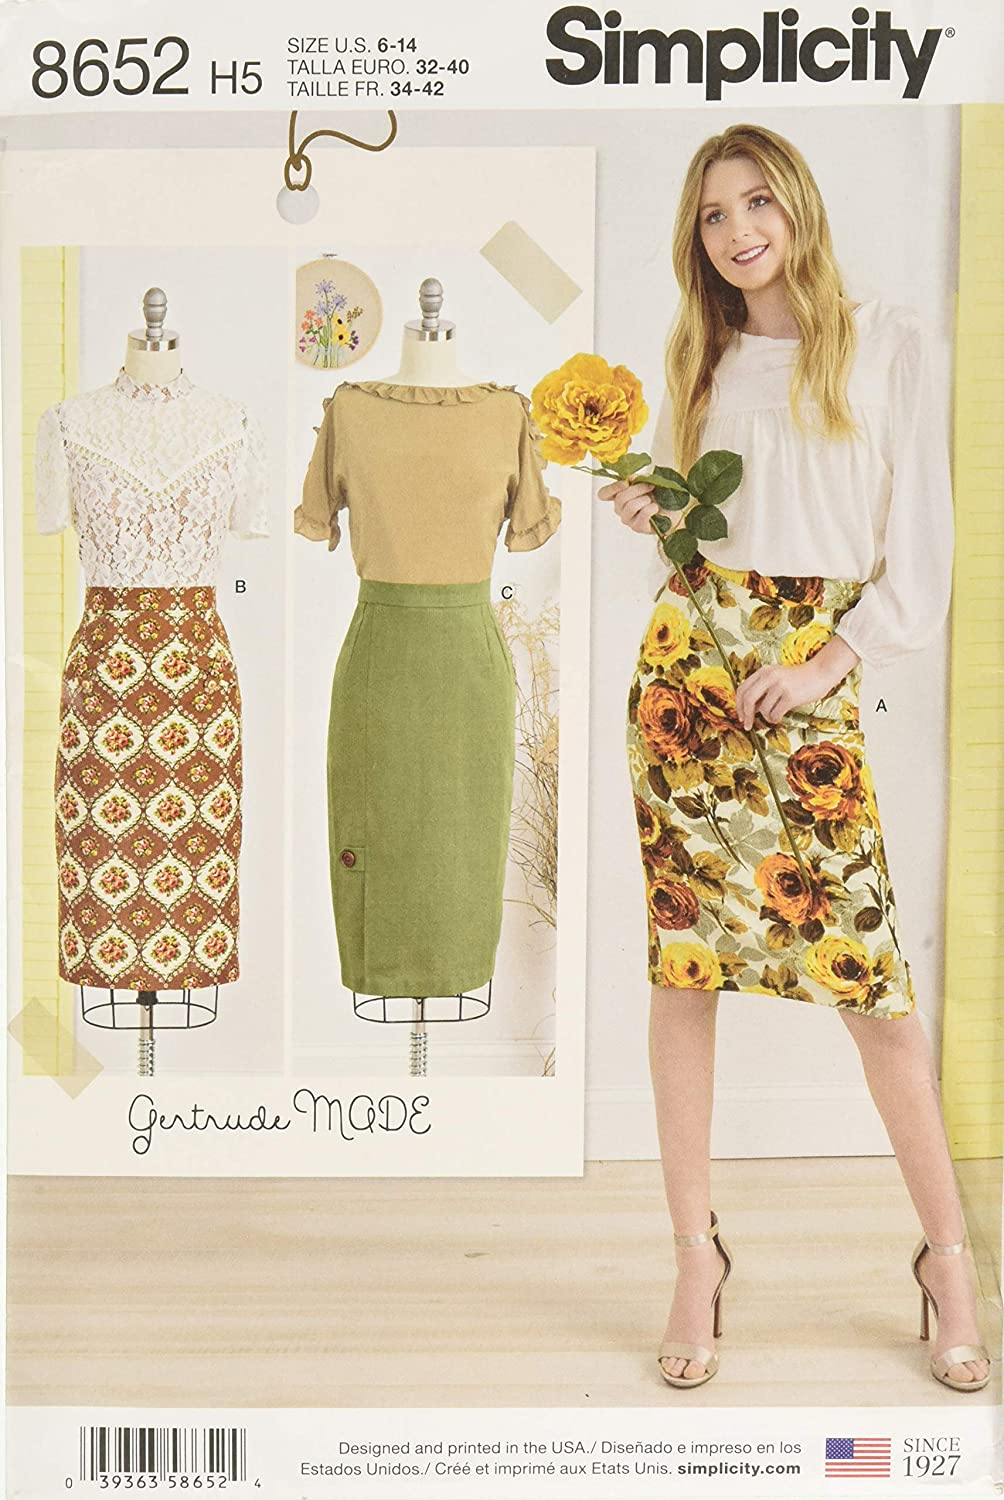 6-8-10-12-14 Simplicity Patterns US8652H5 Skirts /& Pants H5